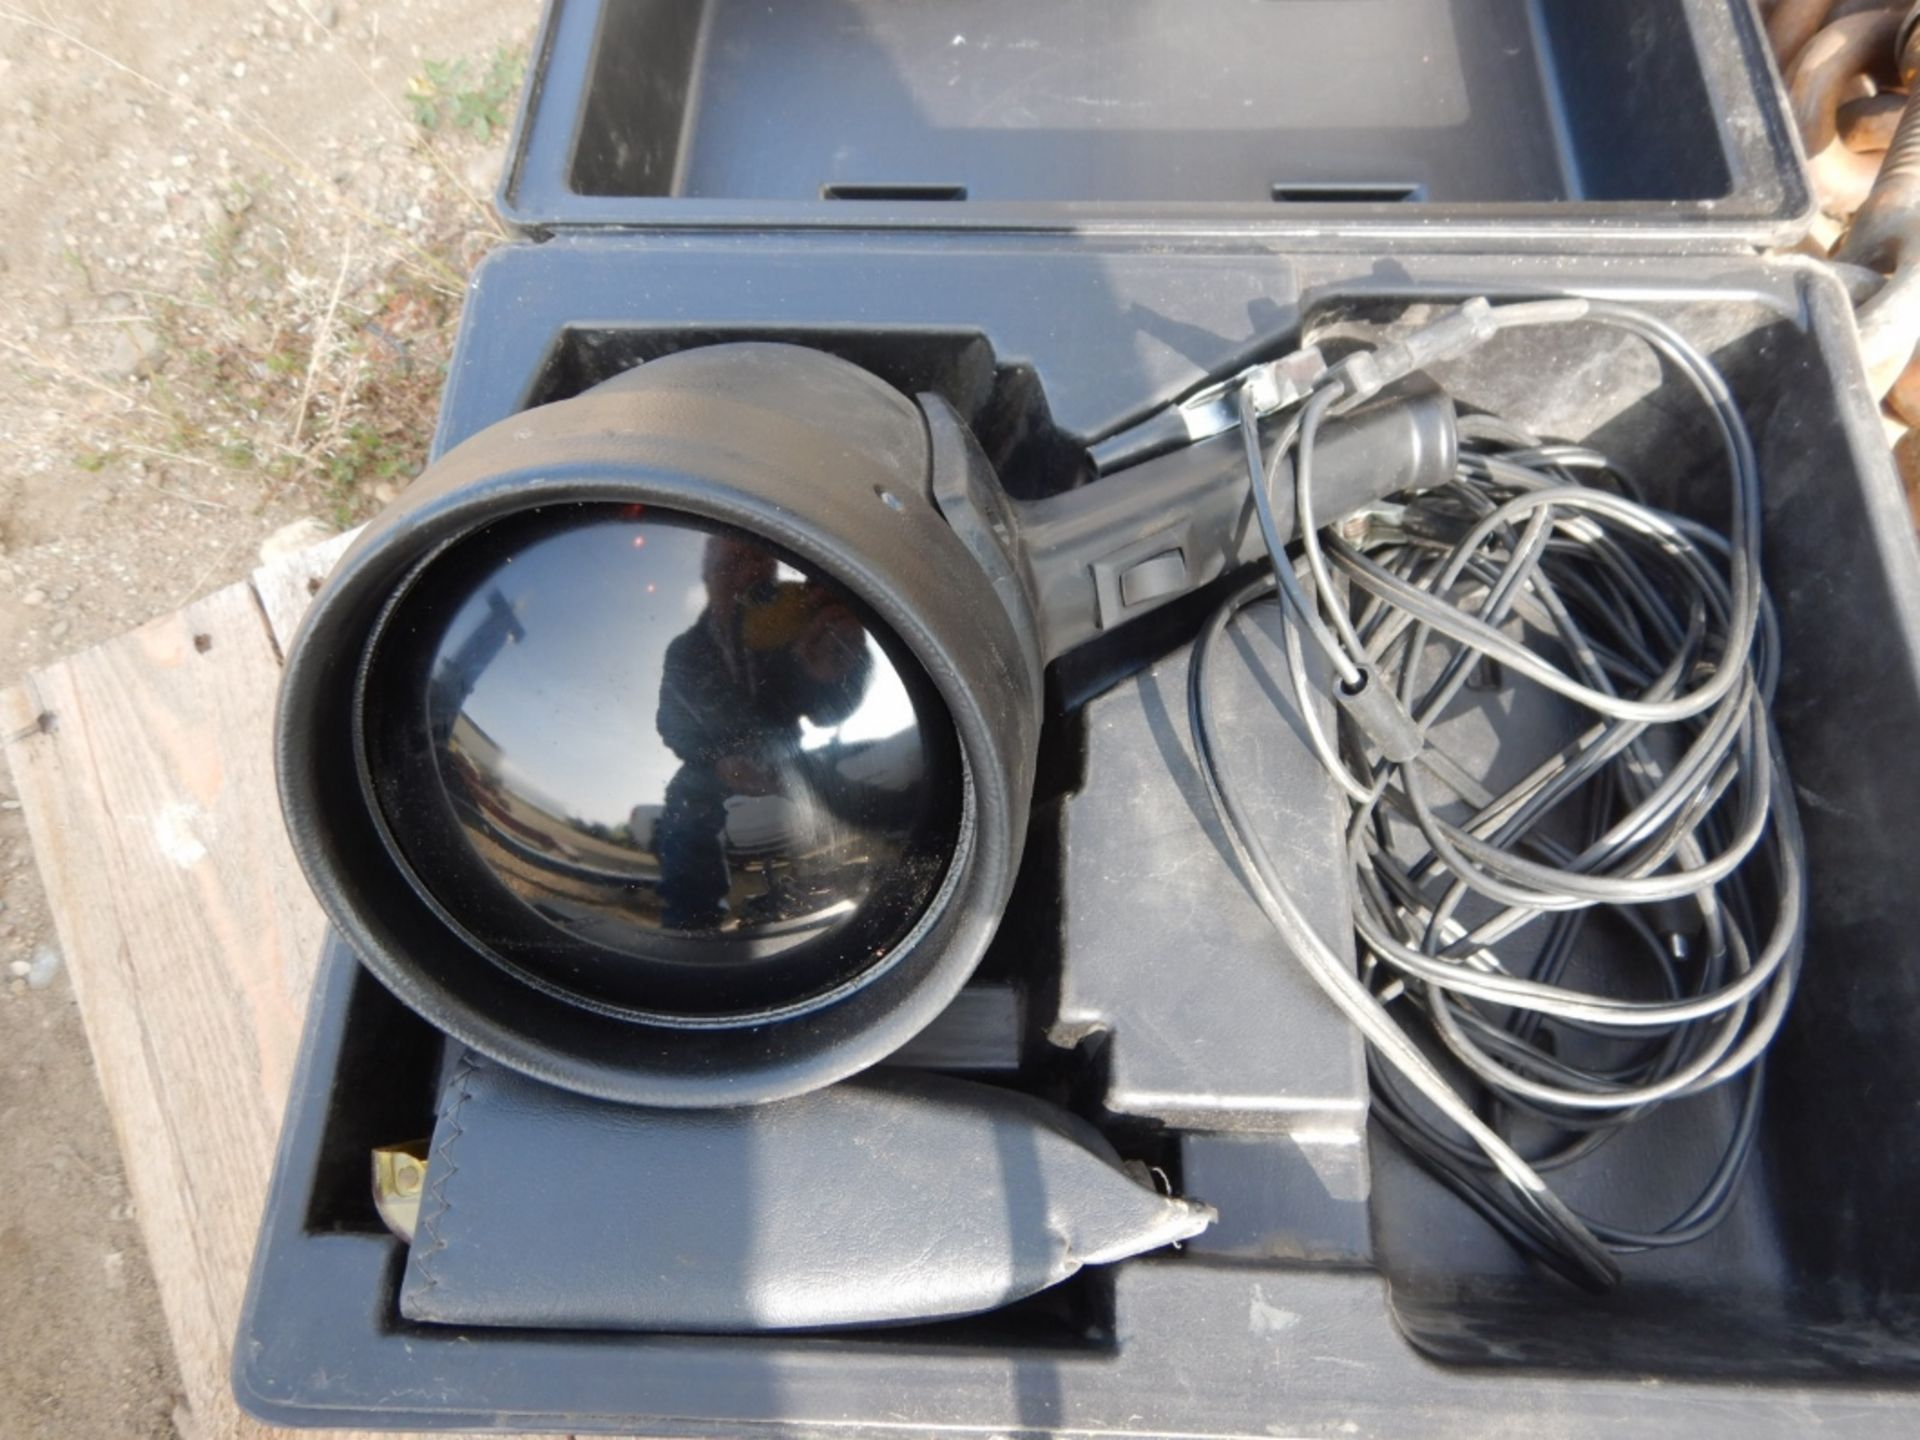 Lot 389 - LOAD BOOMER, BOOSTER CABLES, WEB STRAPS, JIG SAW, ETC